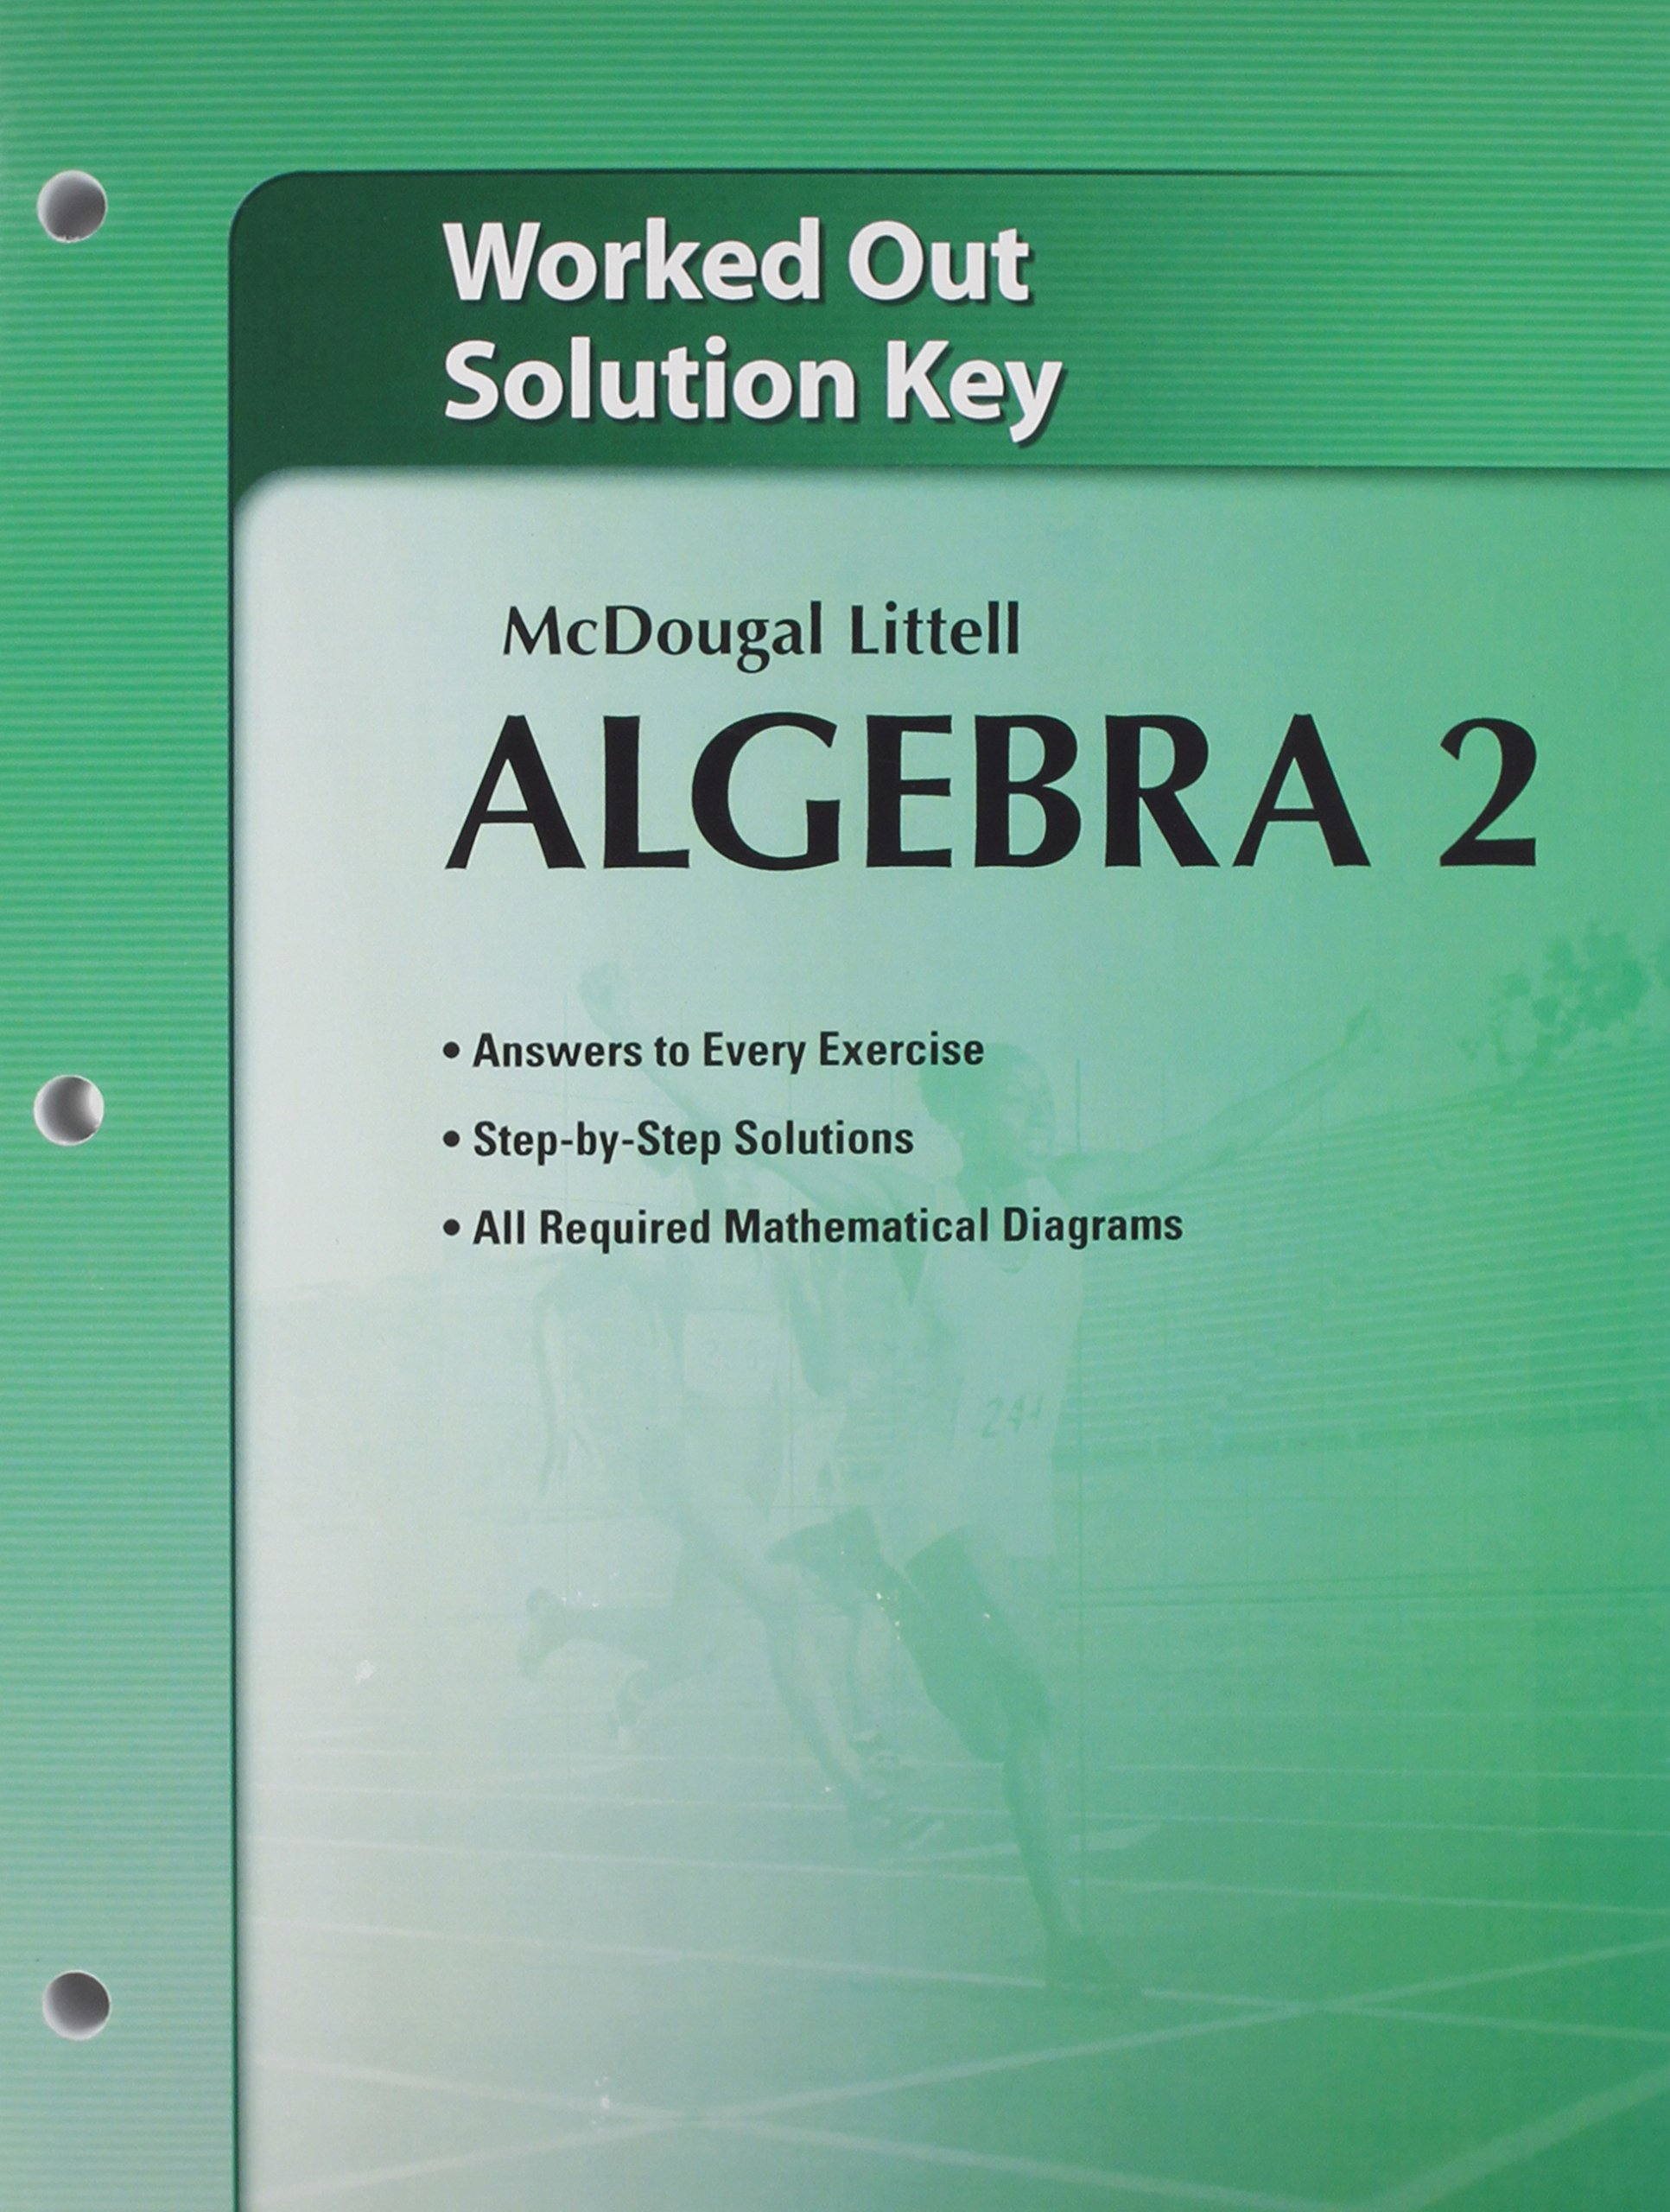 Worksheets Mcdougal Littell Algebra 1 Worksheet Answers amazon com holt mcdougal larson algebra 2 worked out solutions key 9780618736652 littel books